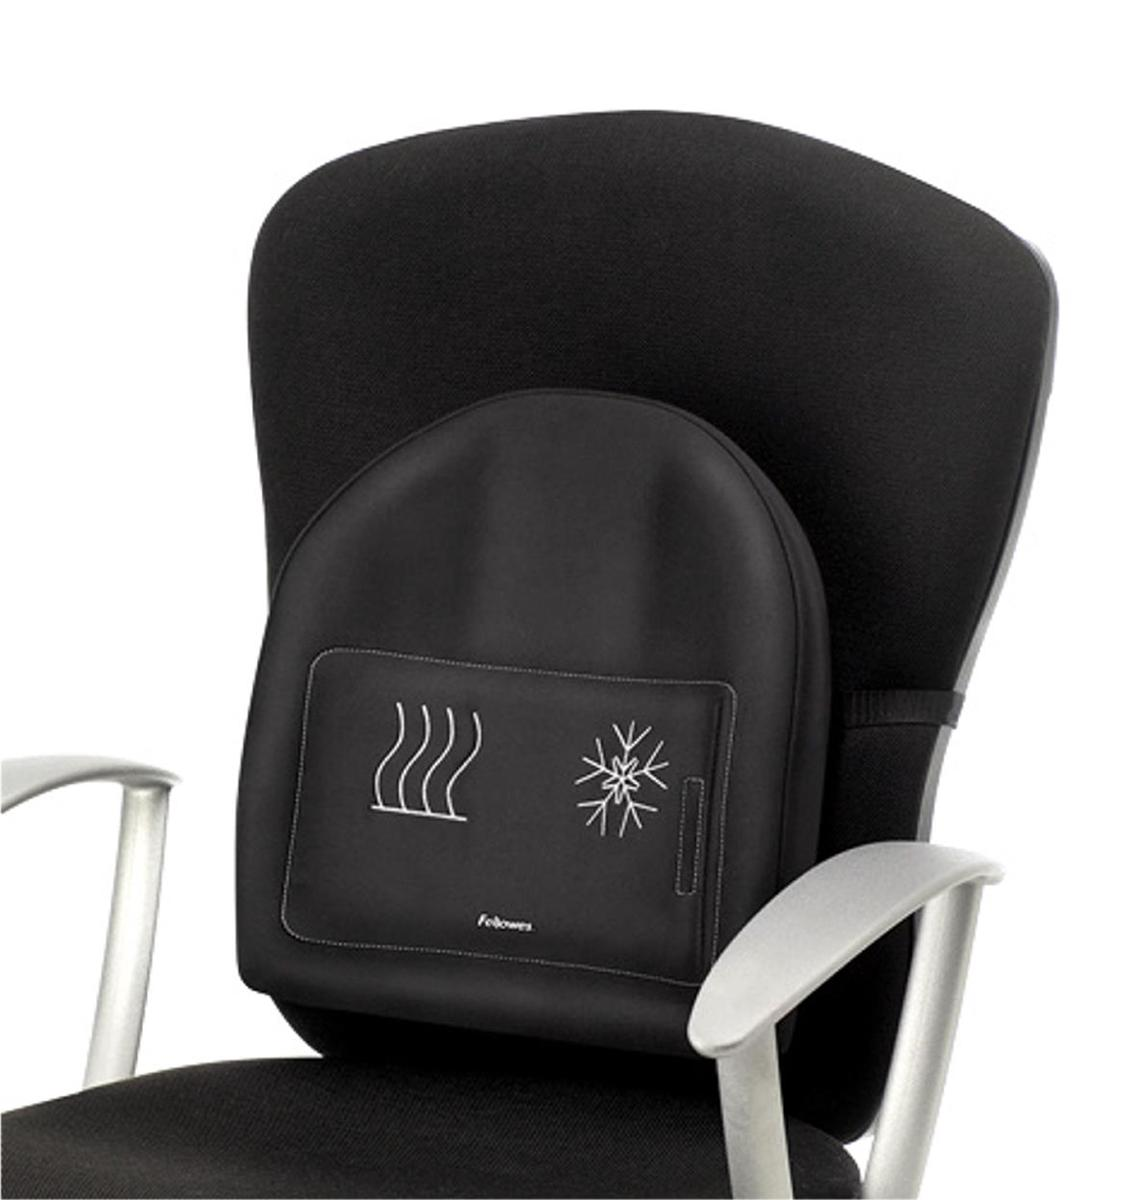 Image for Fellowes Professional Series Heat and Soothe Back Support Ref 8041901